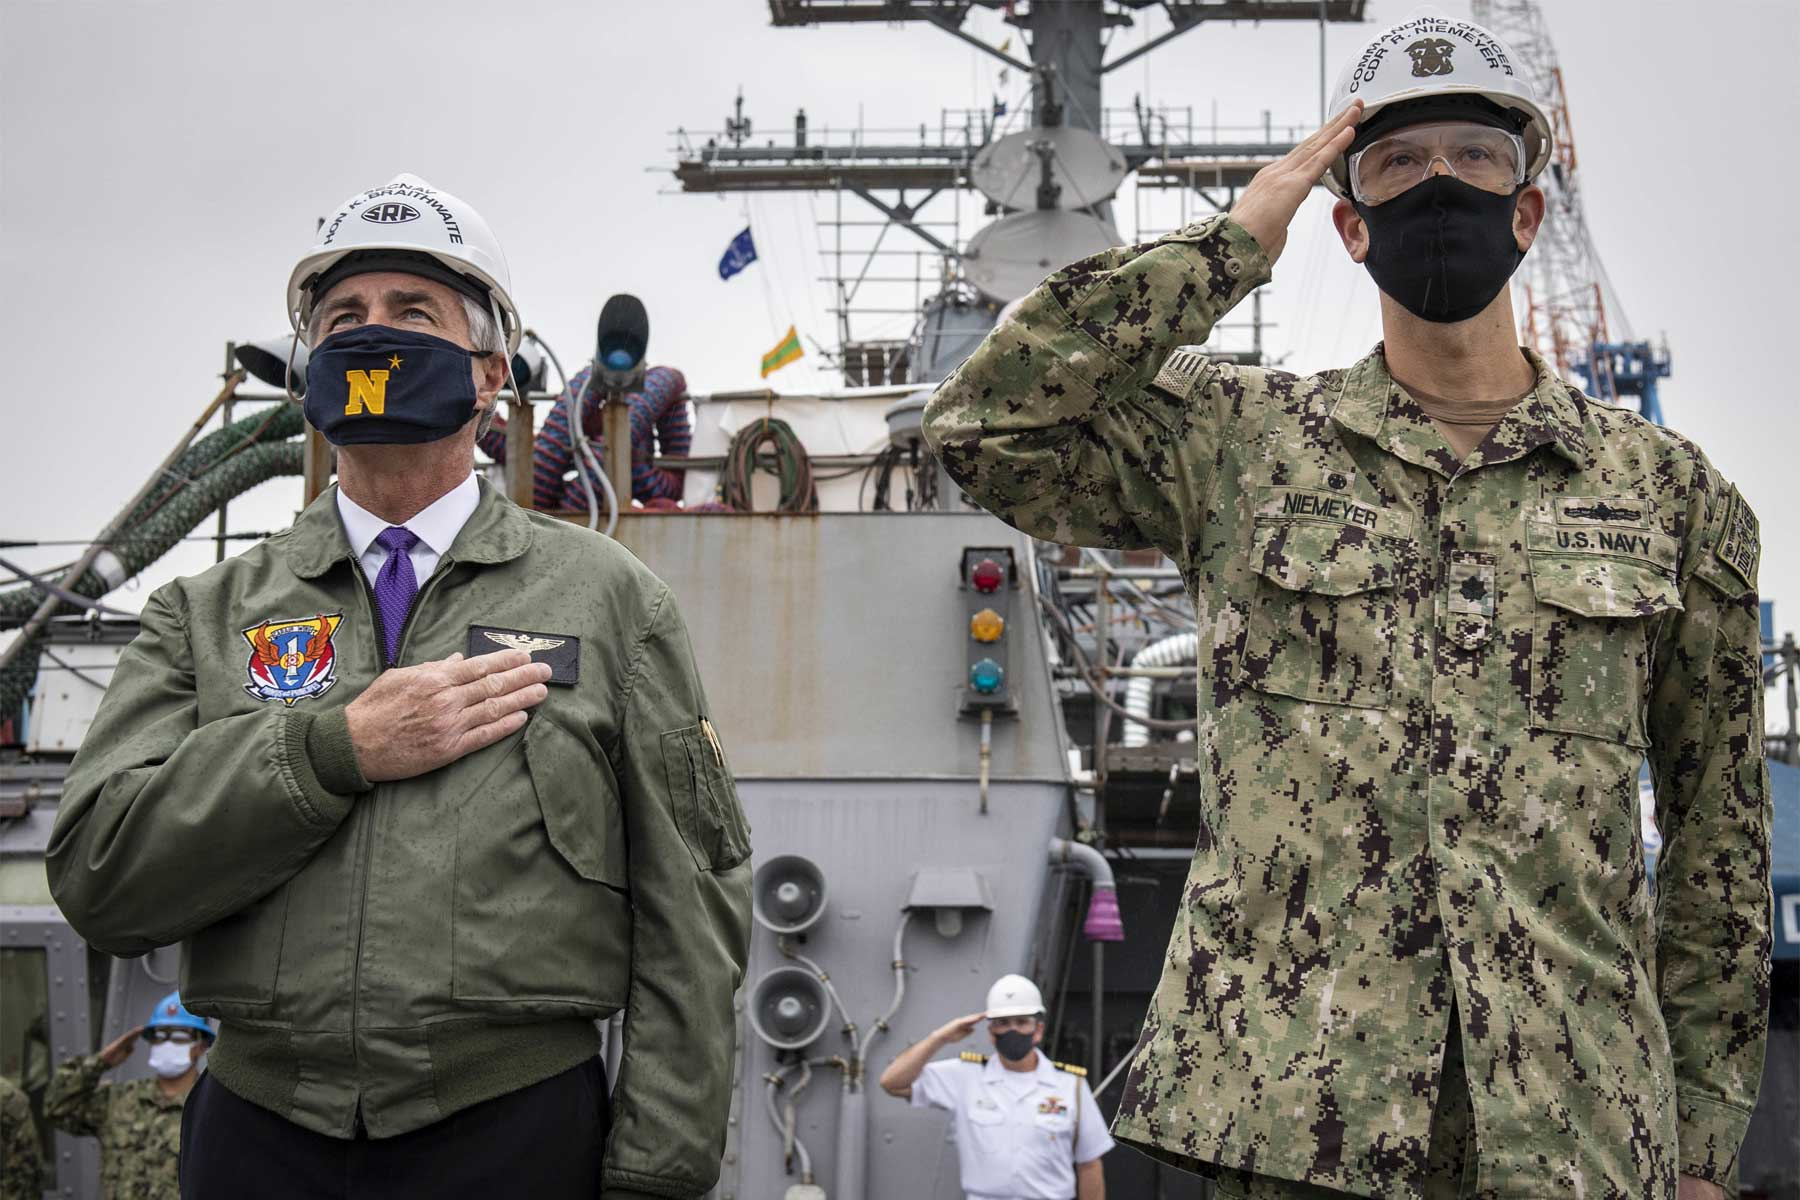 SecNav Says China Poses 'Threat Beyond Any Comparison' to American Way of Life